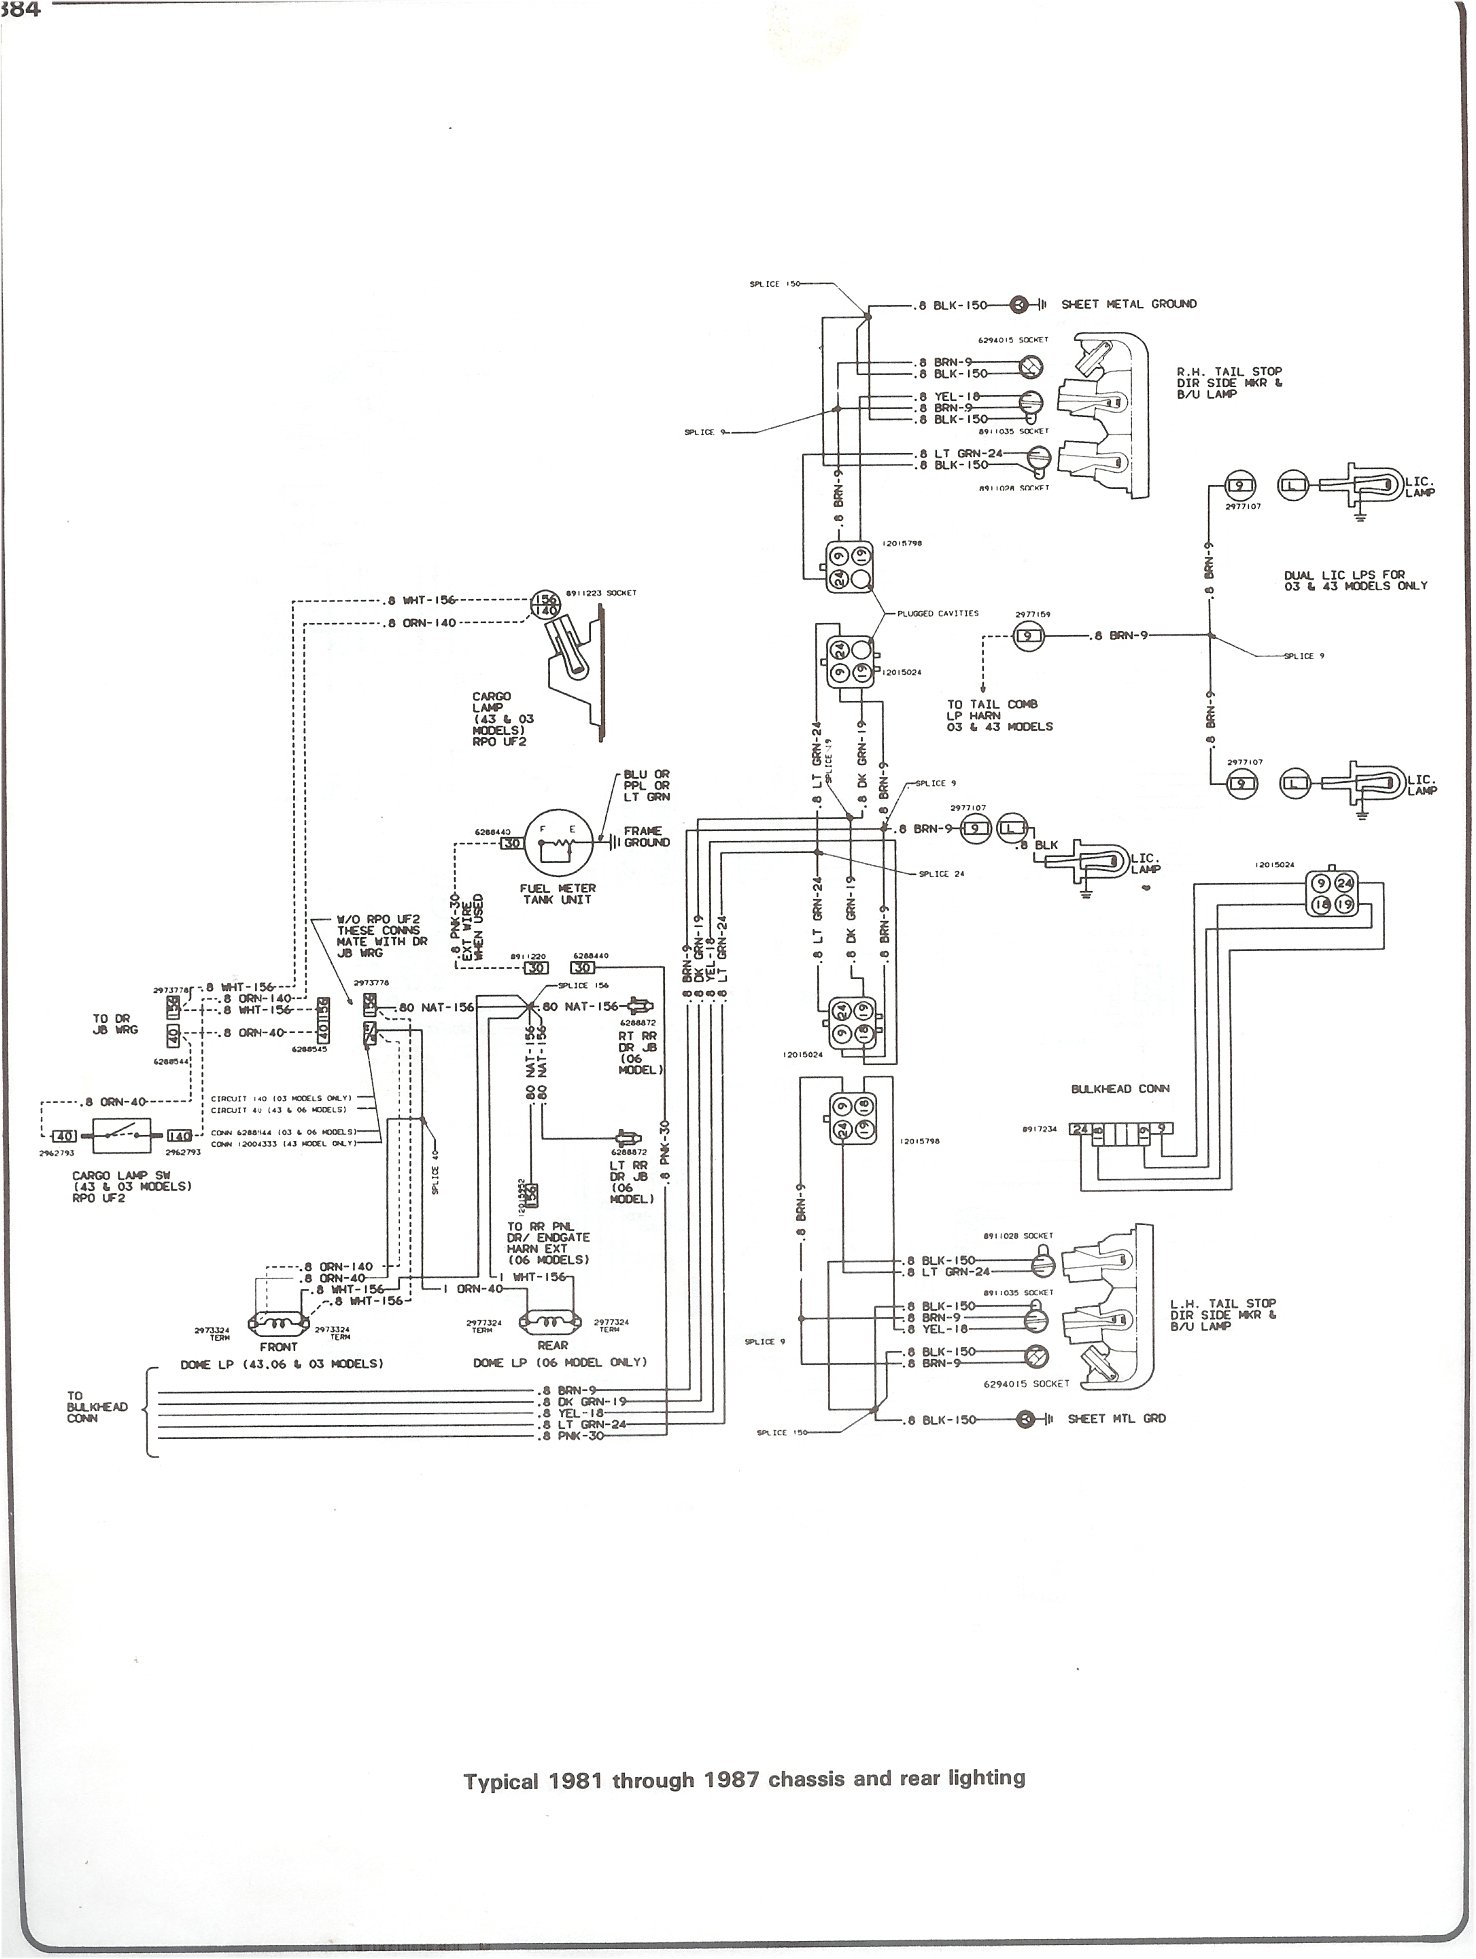 gm stereo wiring diagram 1979 c20 great installation of wiring Pioneer Speaker Wire Color Code 1979 c10 wiring diagram wiring diagram third level rh 19 7 20 jacobwinterstein gm delco radio cd players 2018 gm stereo wiring diagram